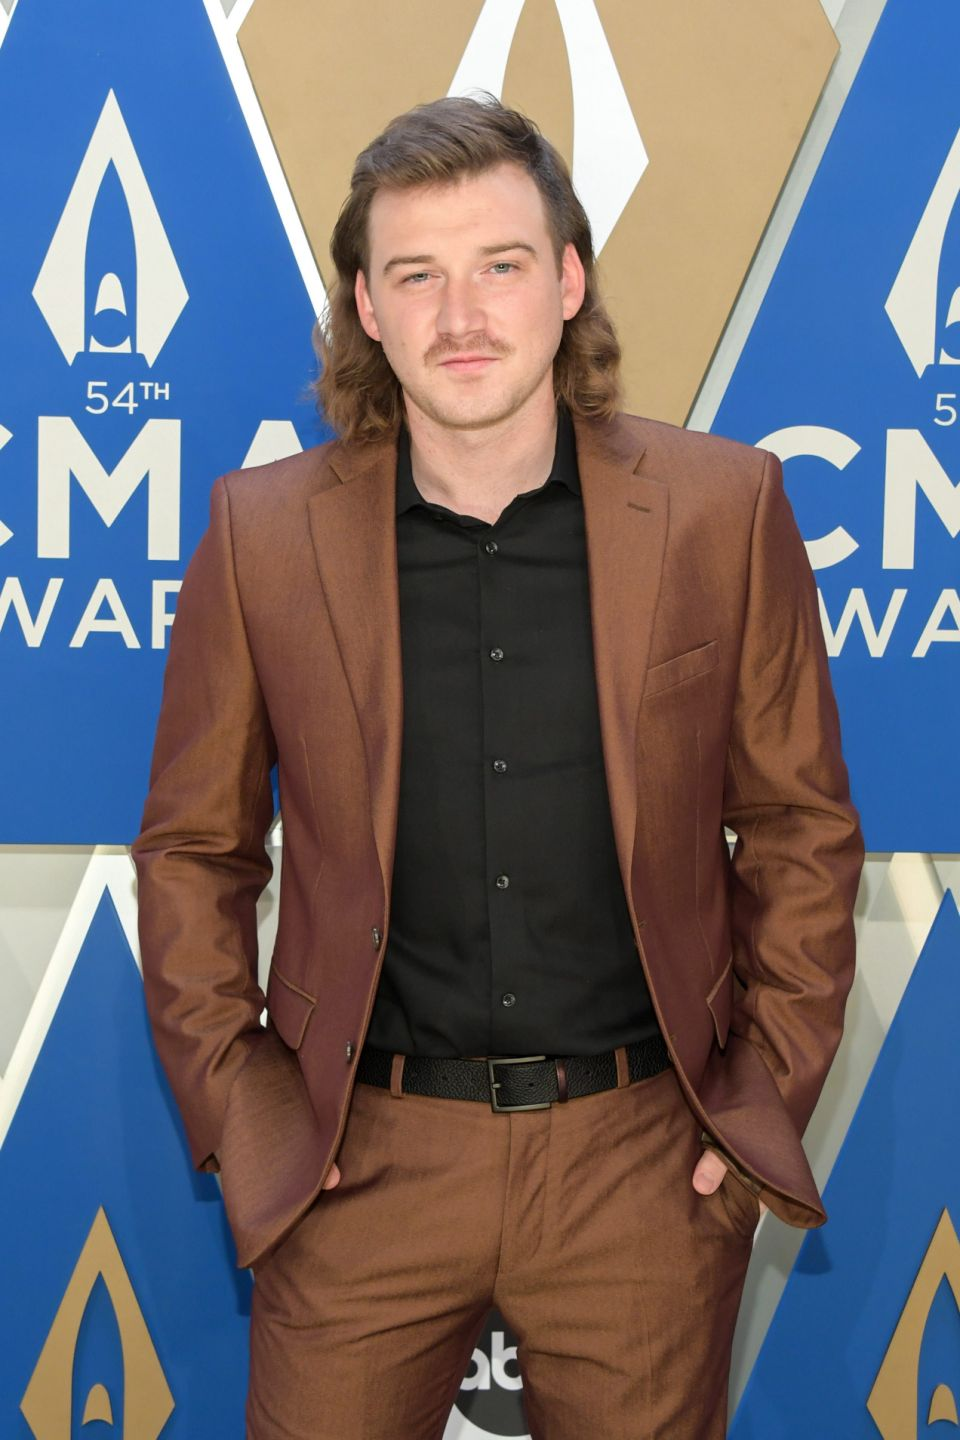 Morgan Wallen on Nov. 11, 2020, in Nashville, Tennessee.